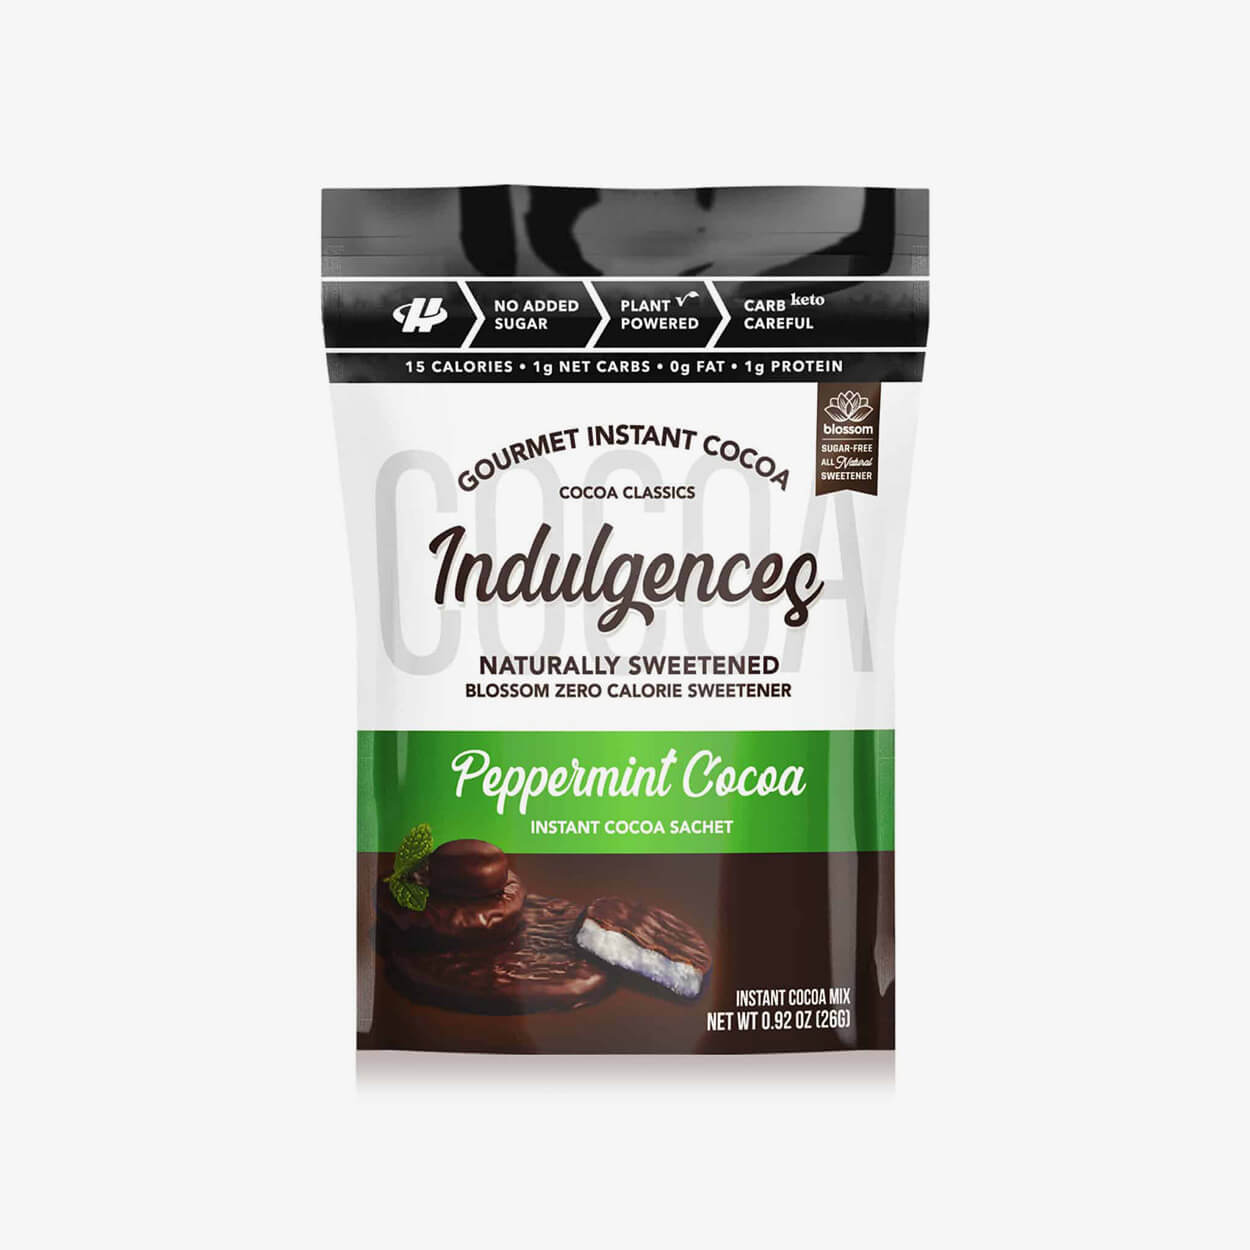 Peppermint Cocoa - Indulgences - Halo Healthy Tribes